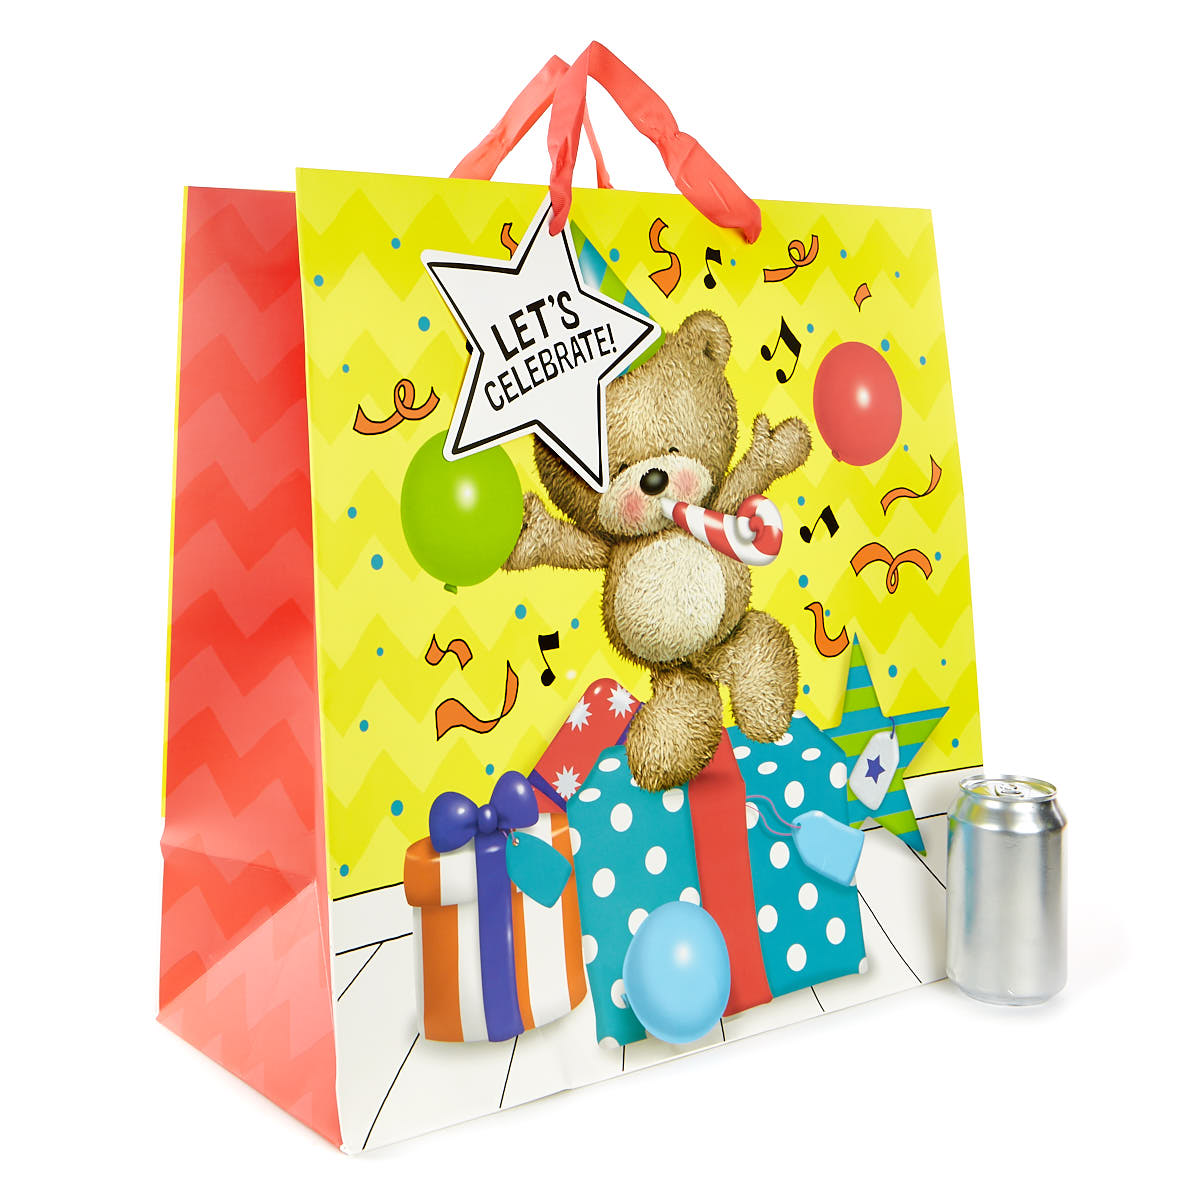 Extra Large Hugs Bear Let's Celebrate Gift Bag